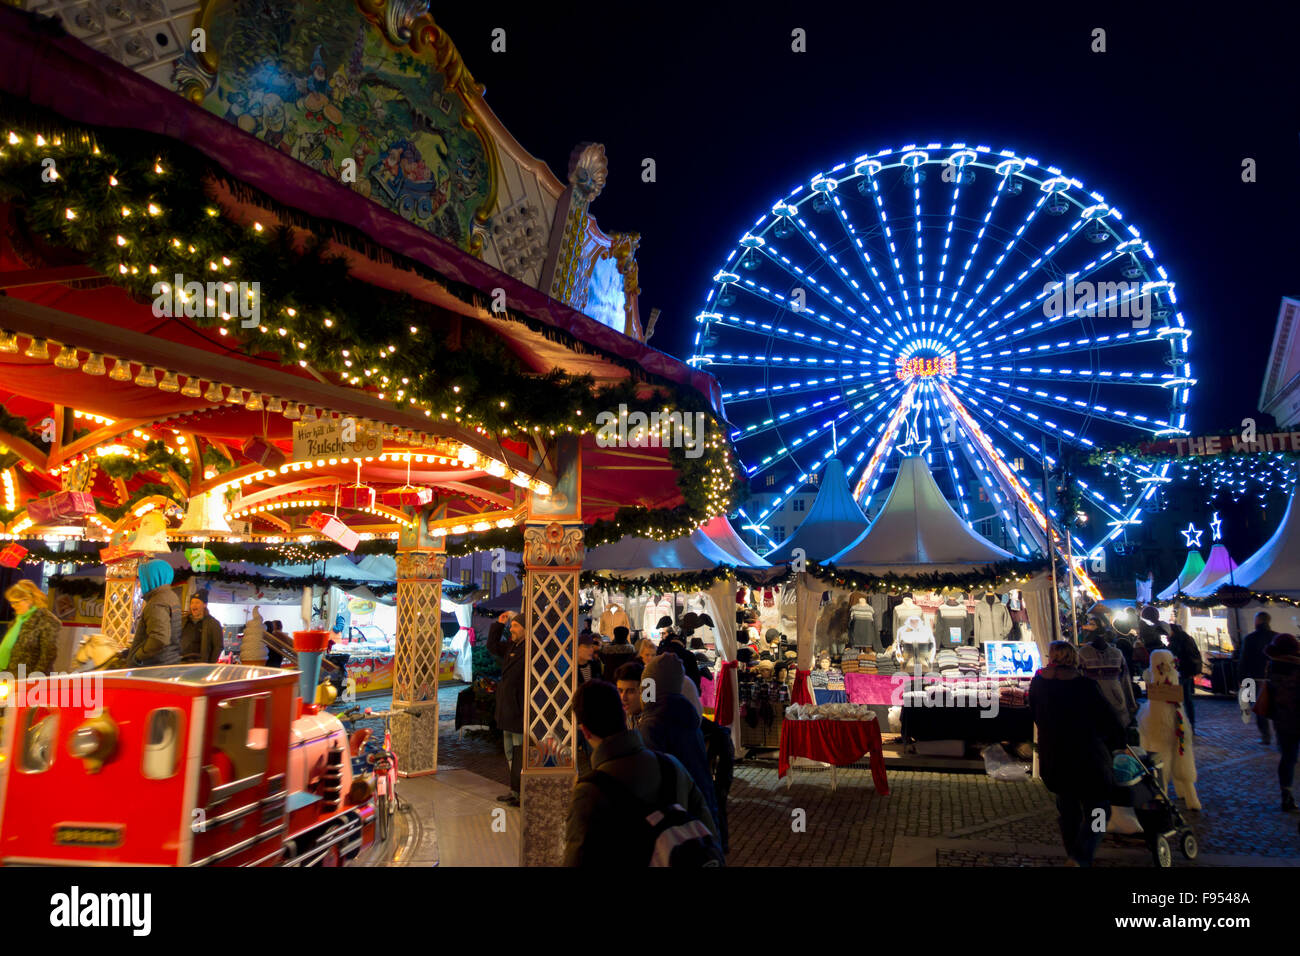 Merry-go-round with Christmas train, ferris wheel, fun fair and stalls at the new Christmas market at Nytorv, Copenhagen Stock Photo